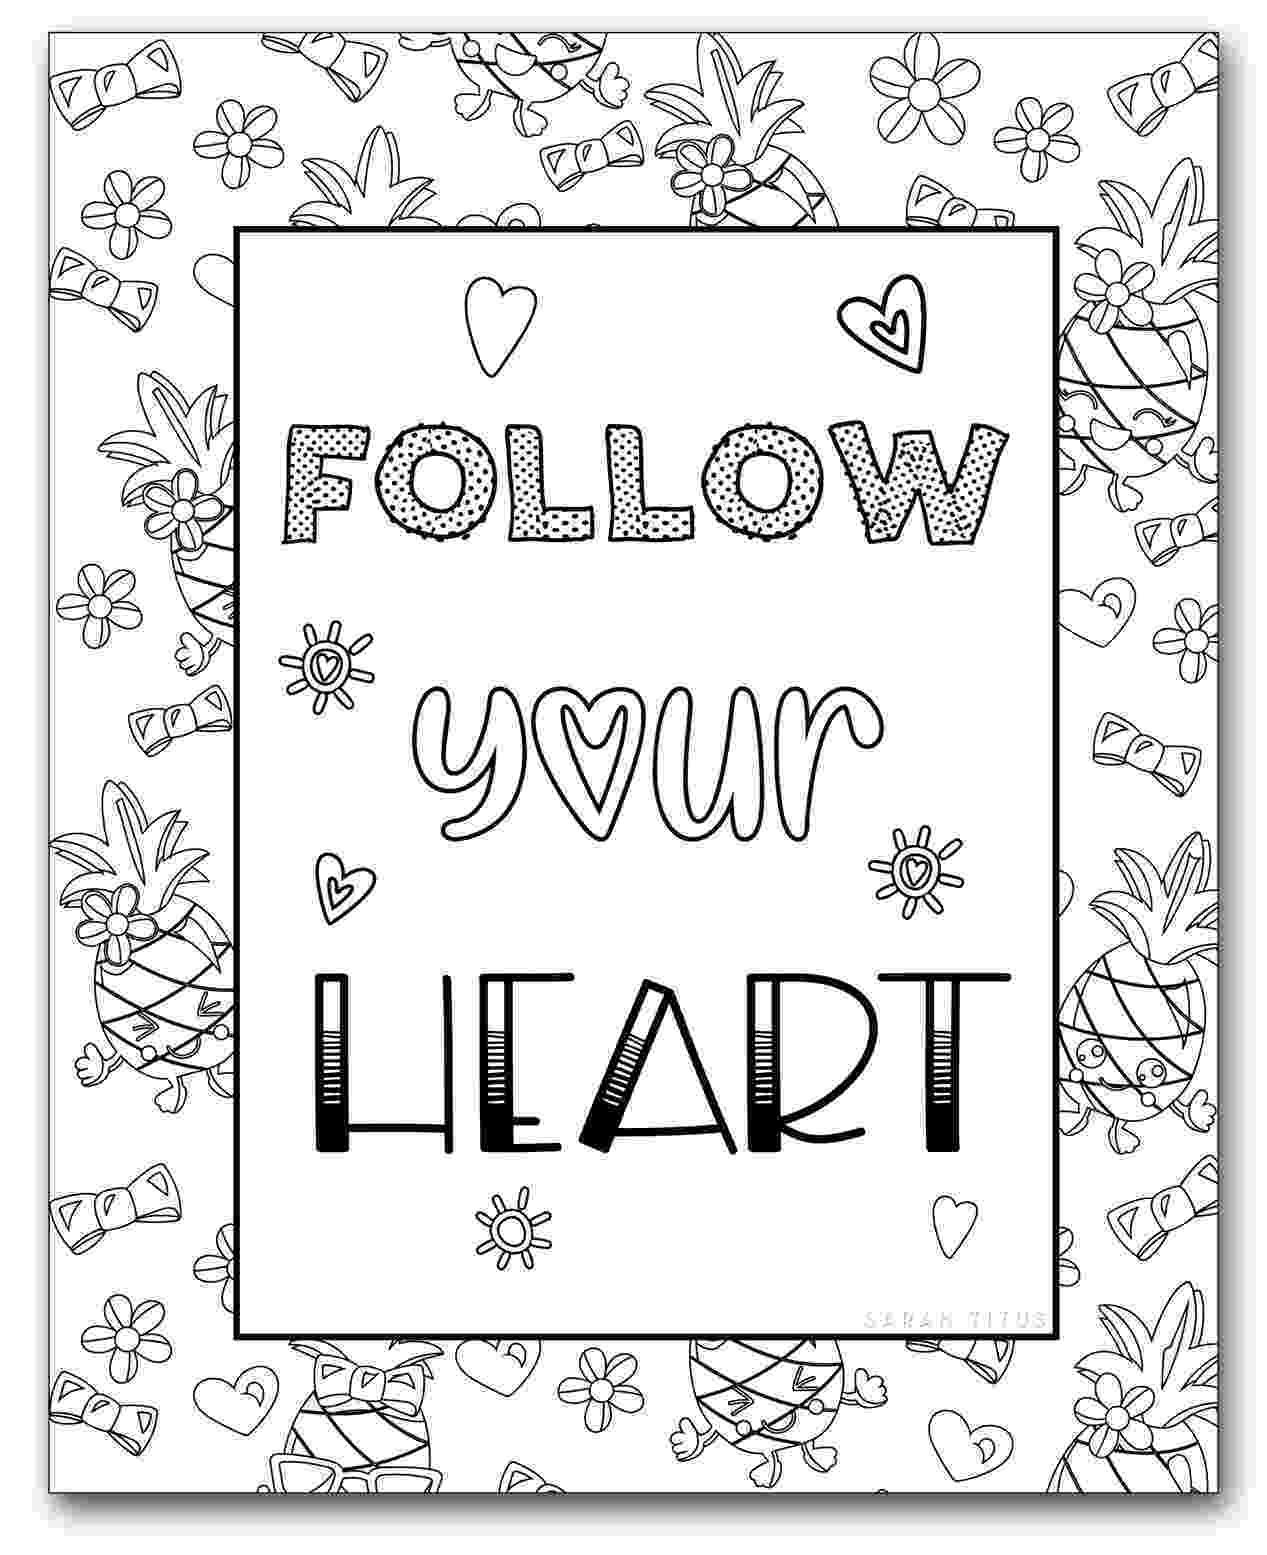 colering pages for girls printable coloring pages for girls sarah titus colering for pages girls